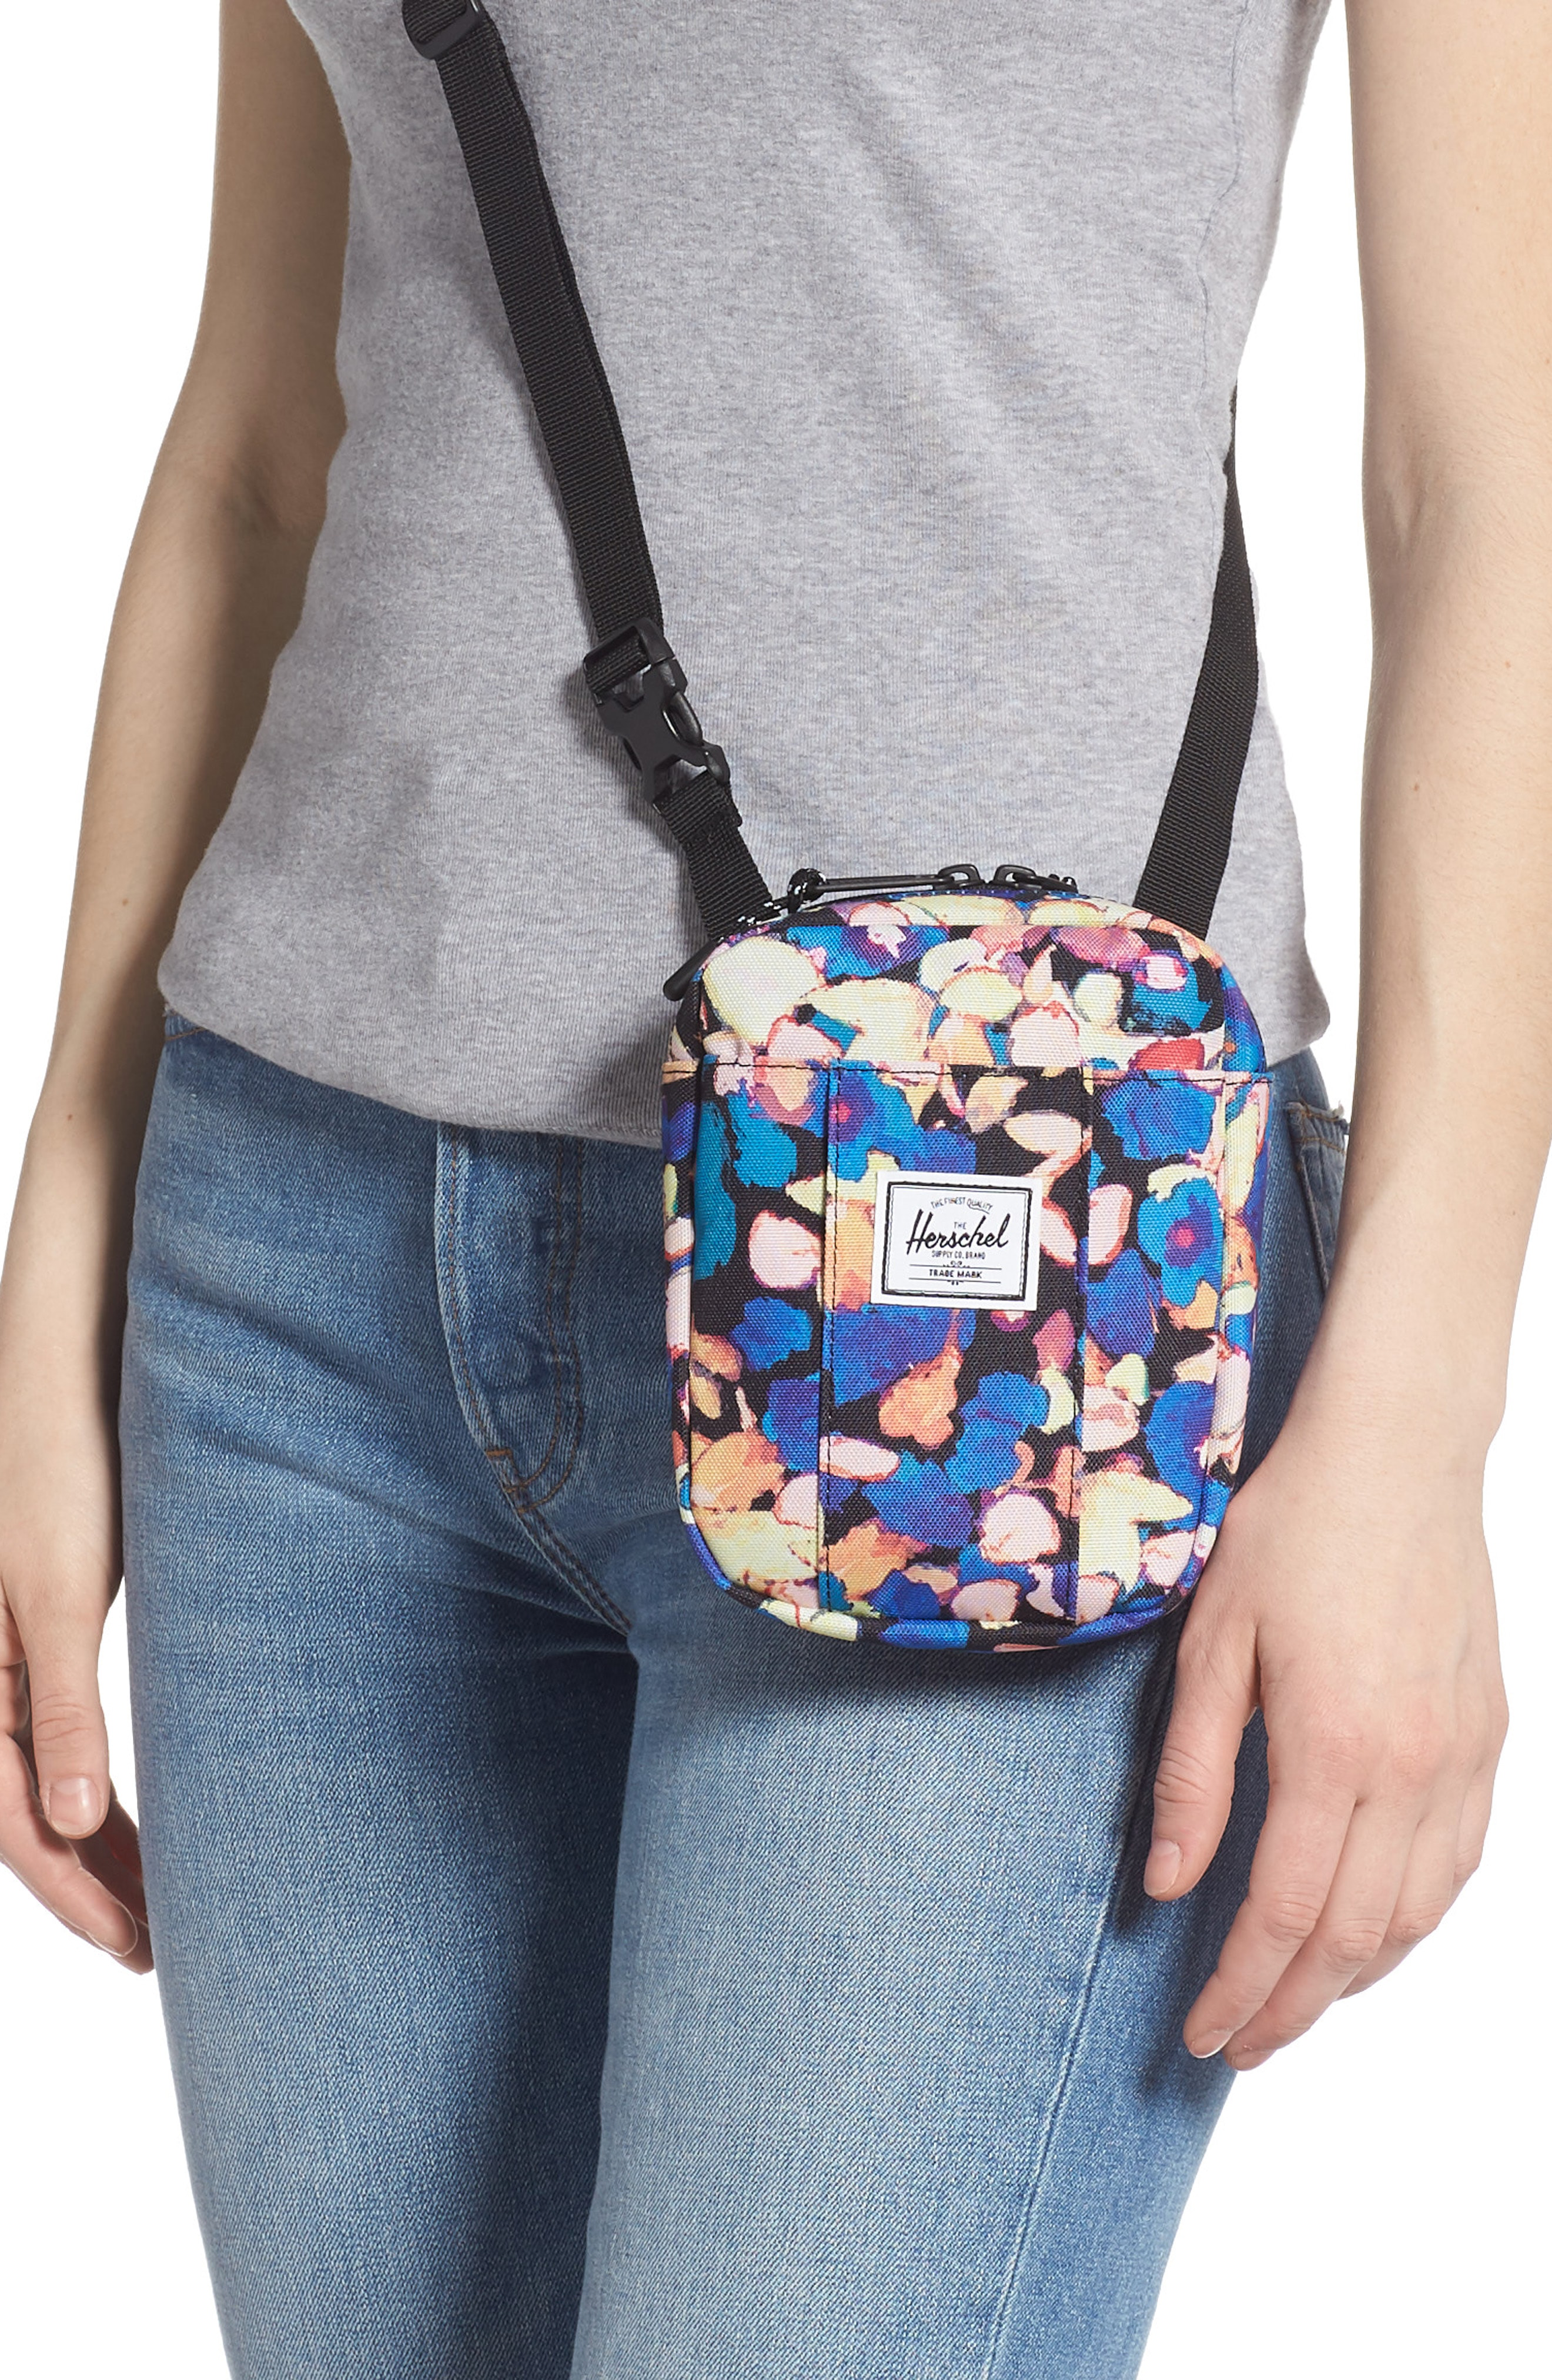 A signature logo patch fronts a smart crossbody bag perfectly sized for  vacations or a walk around the city. This durable and compact style  features an ... 21028e37e03eb